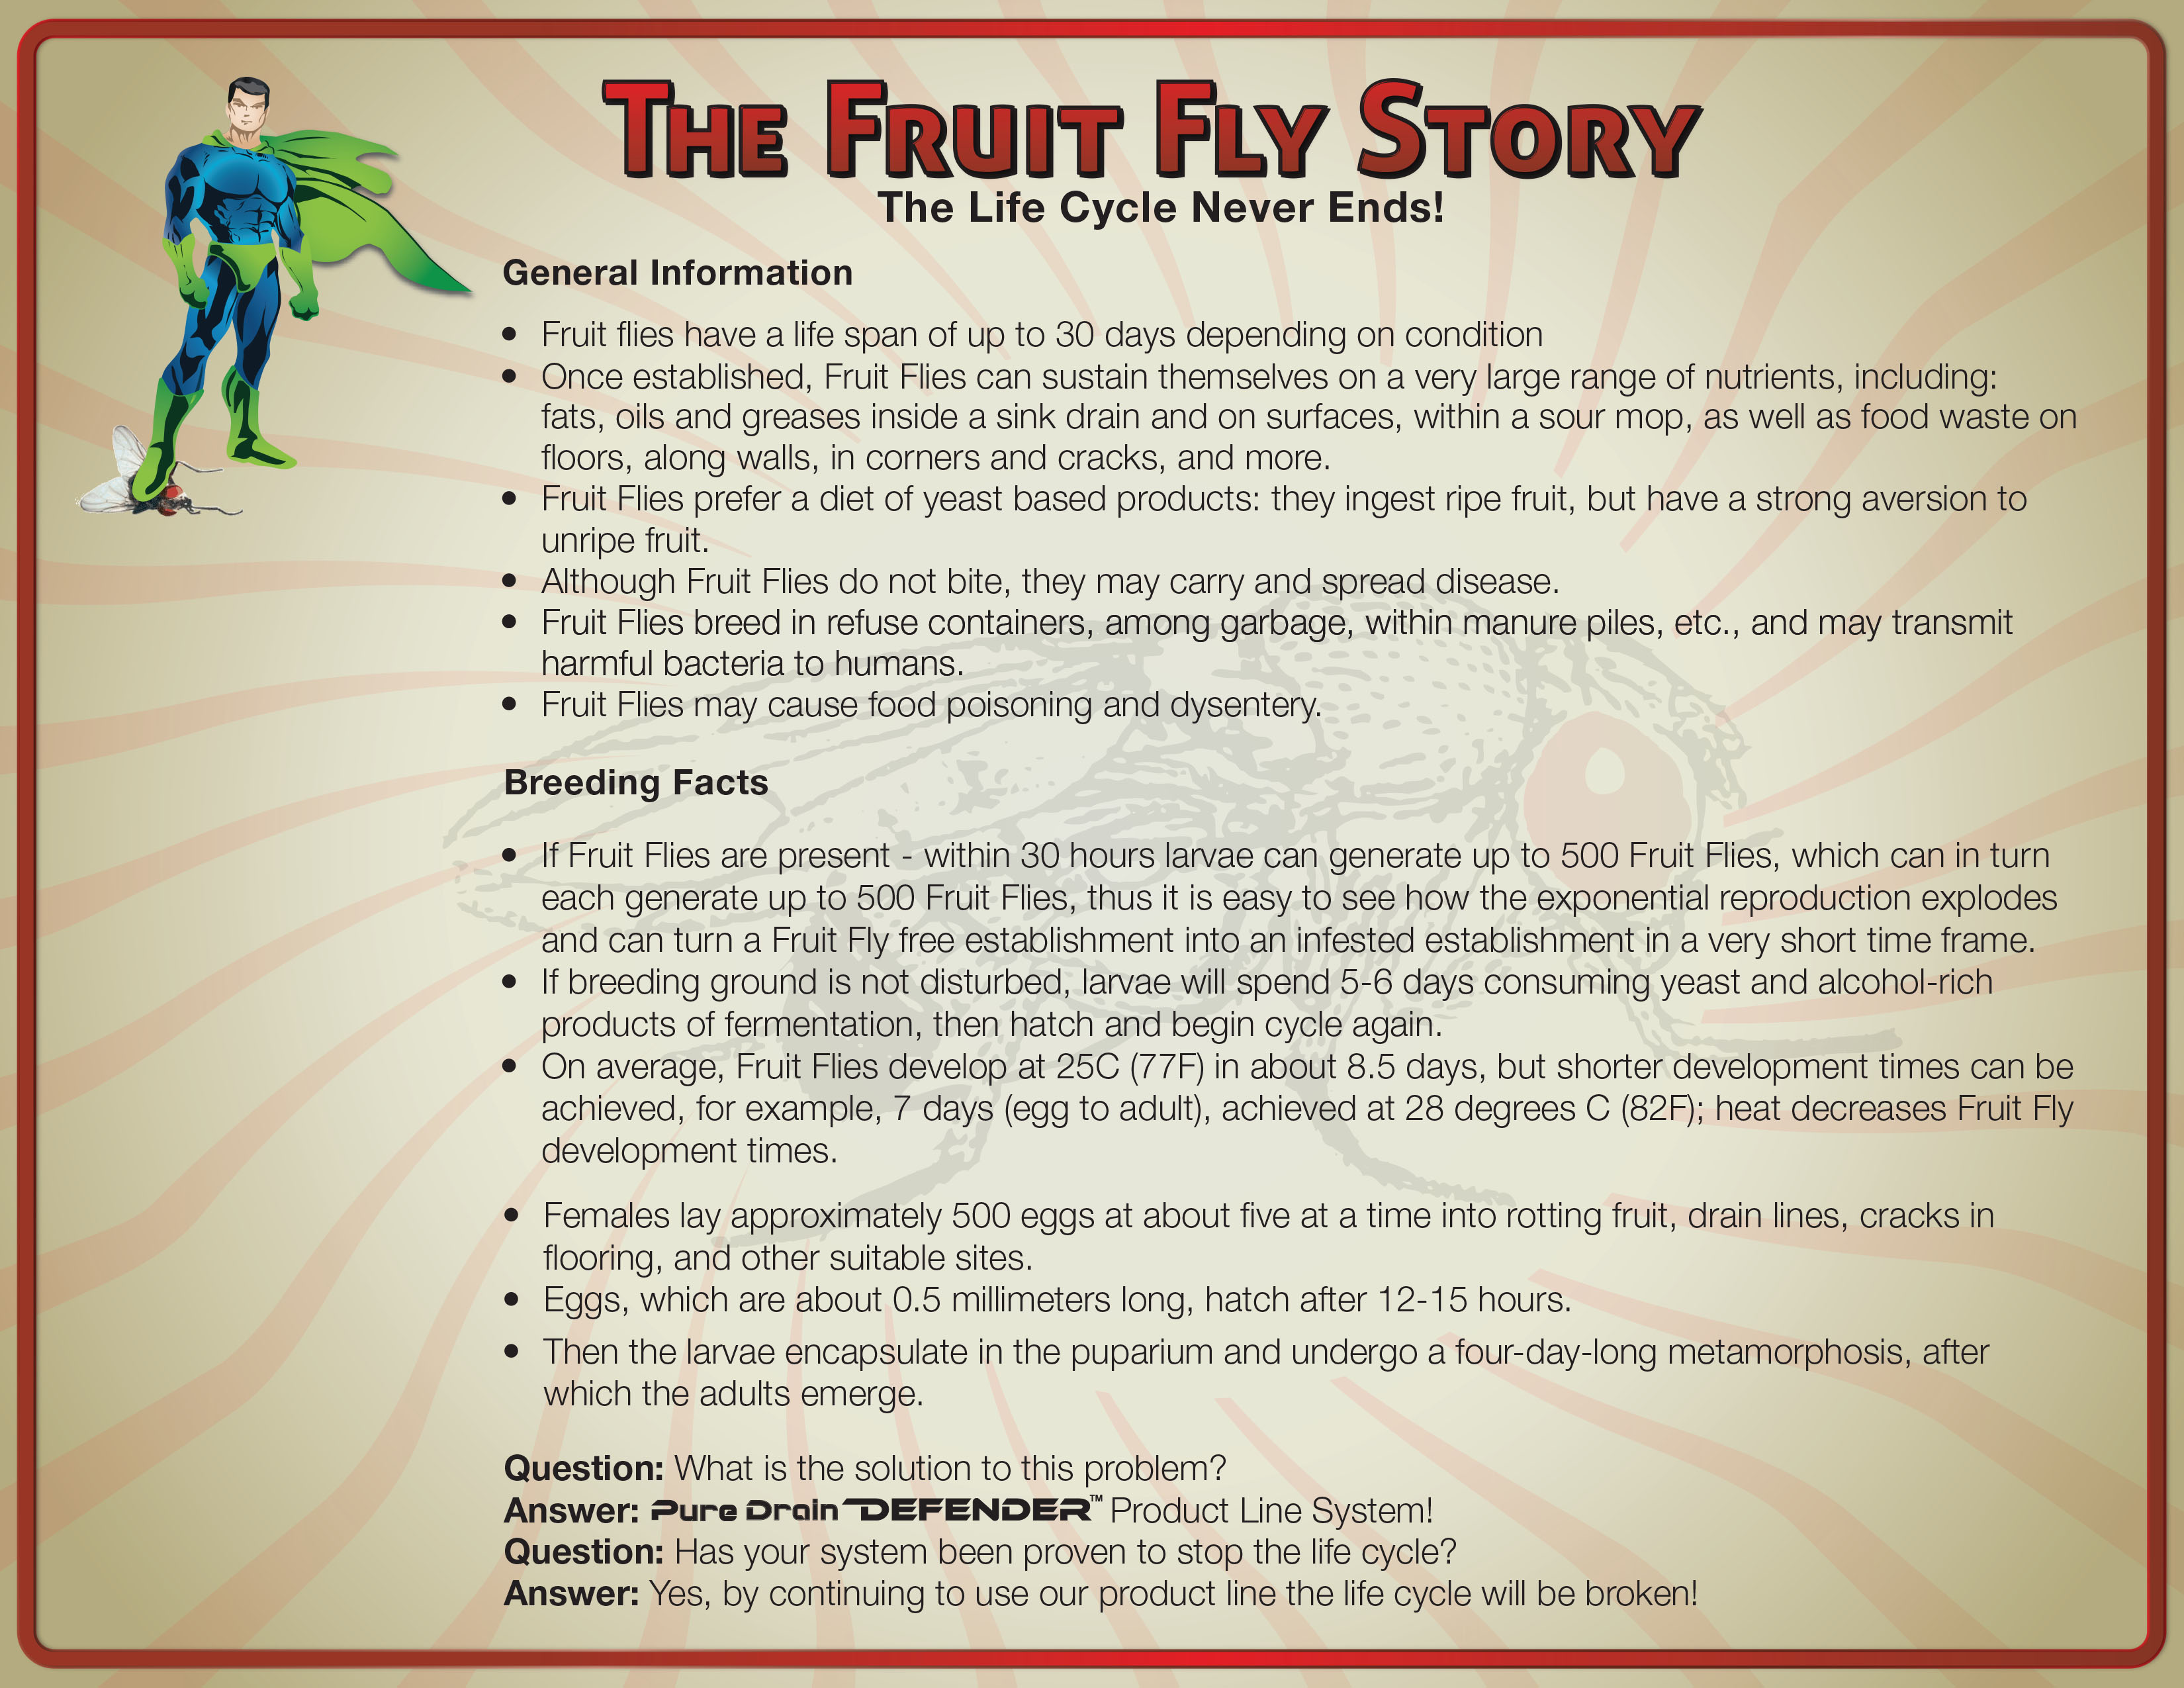 FRUIT FLY STORY